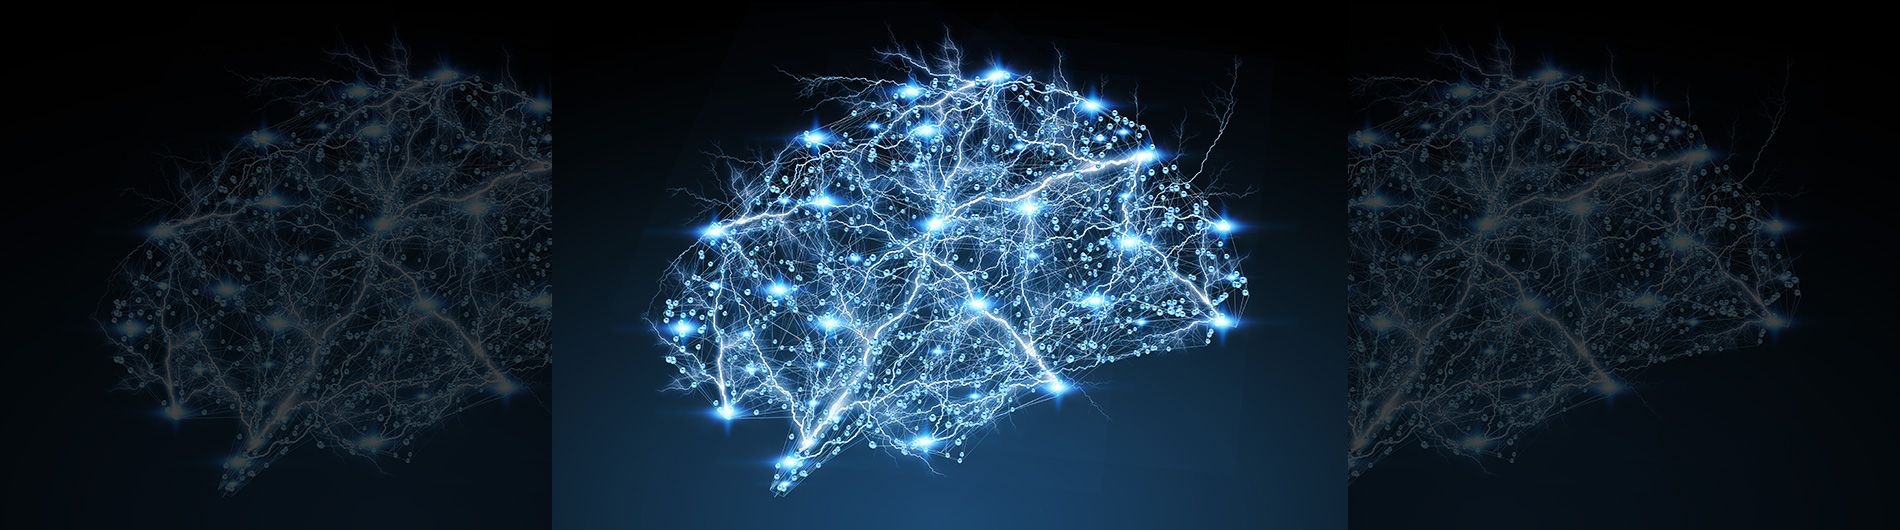 artistic representation of the brain on a blue backbround